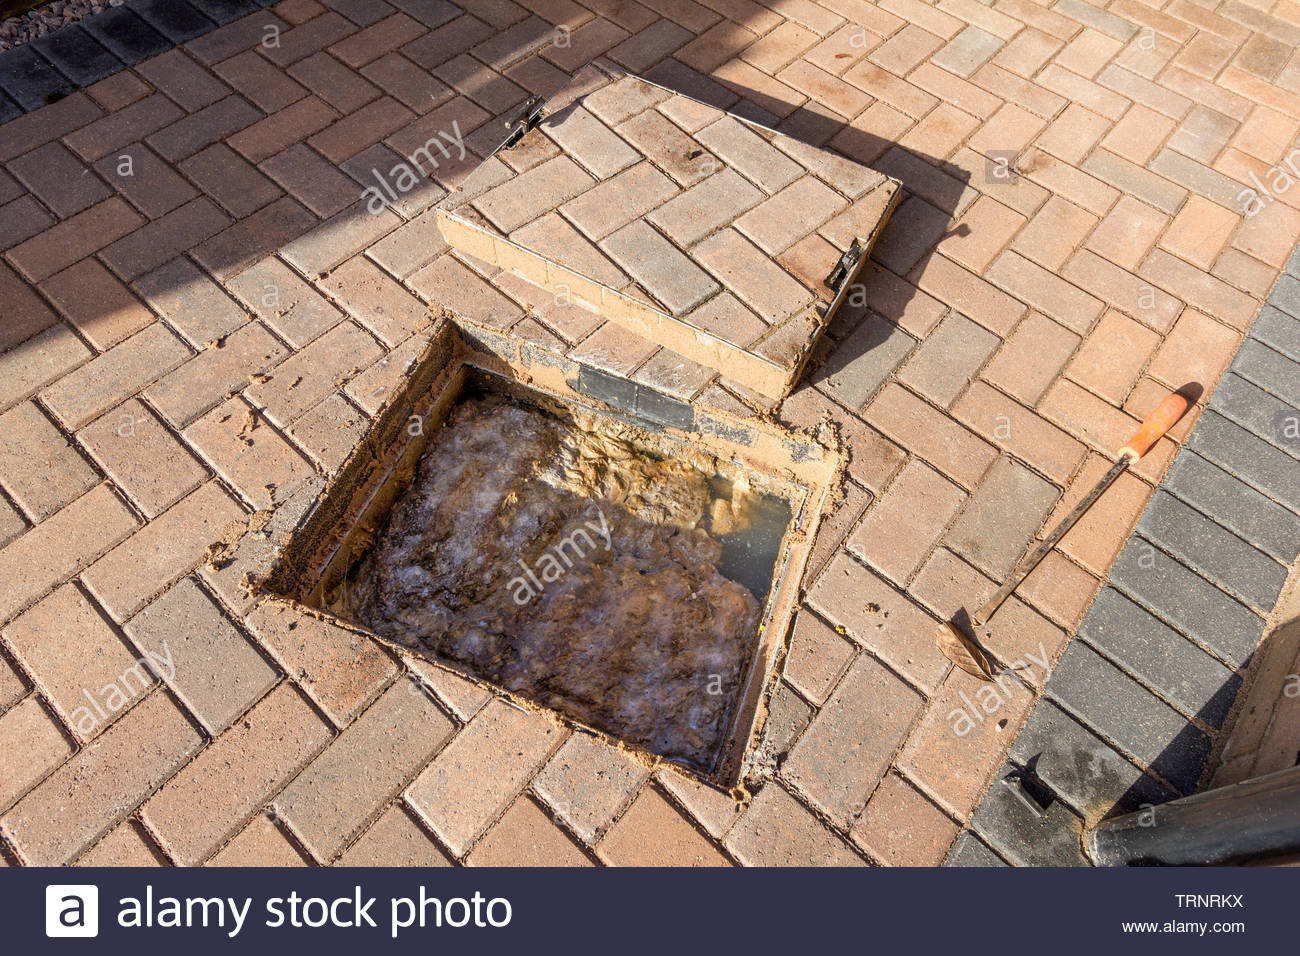 Blocked Drain - Drain cover removed to reveal backed up sewage - Stock Image